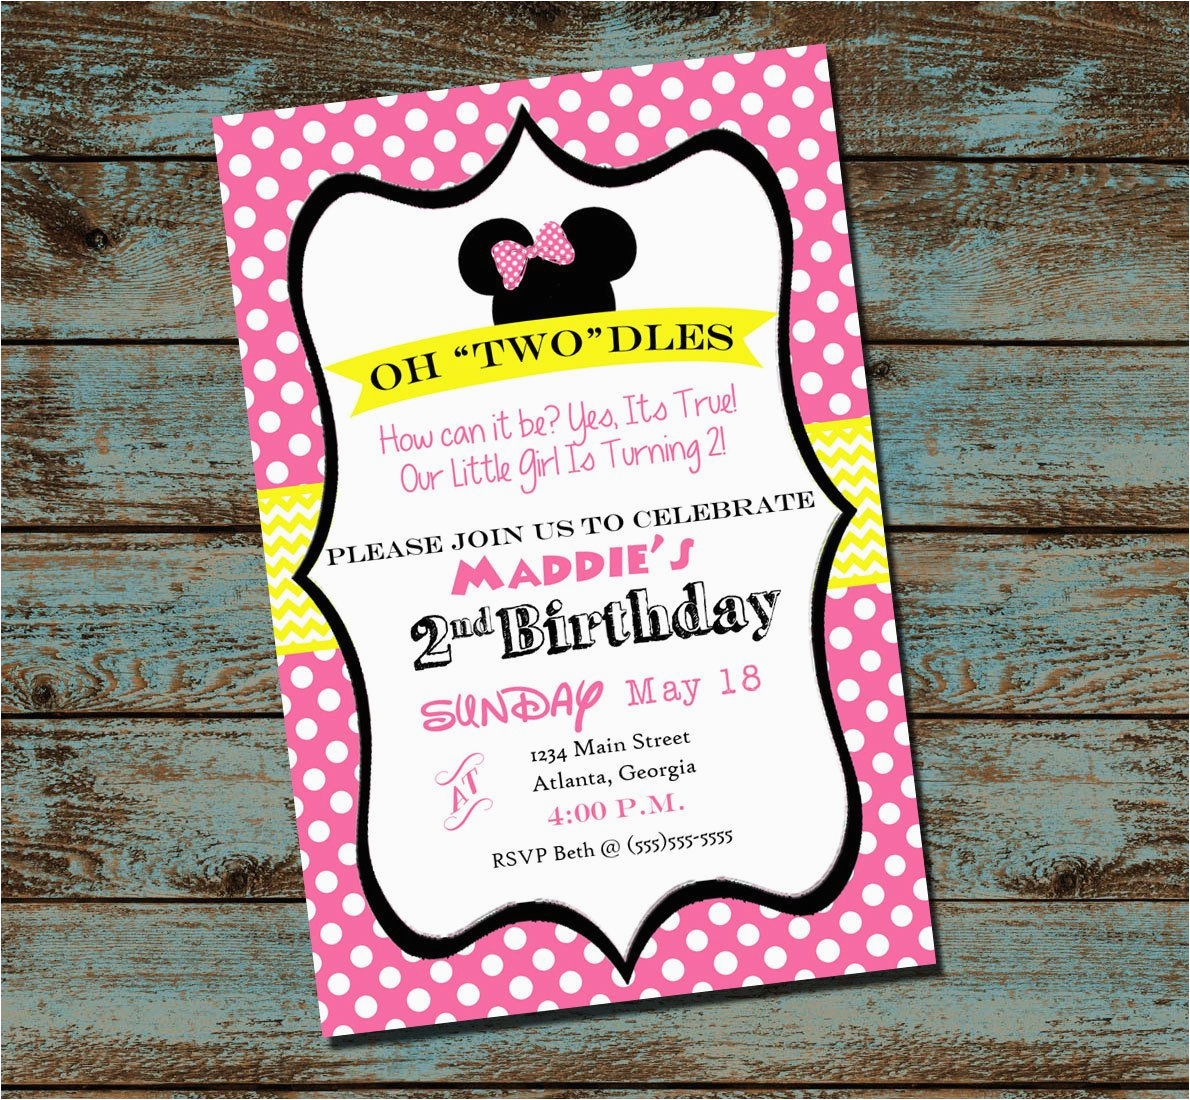 Oh Toodles Birthday Invitations Minnie Mouse 2nd Party Invitation Pink